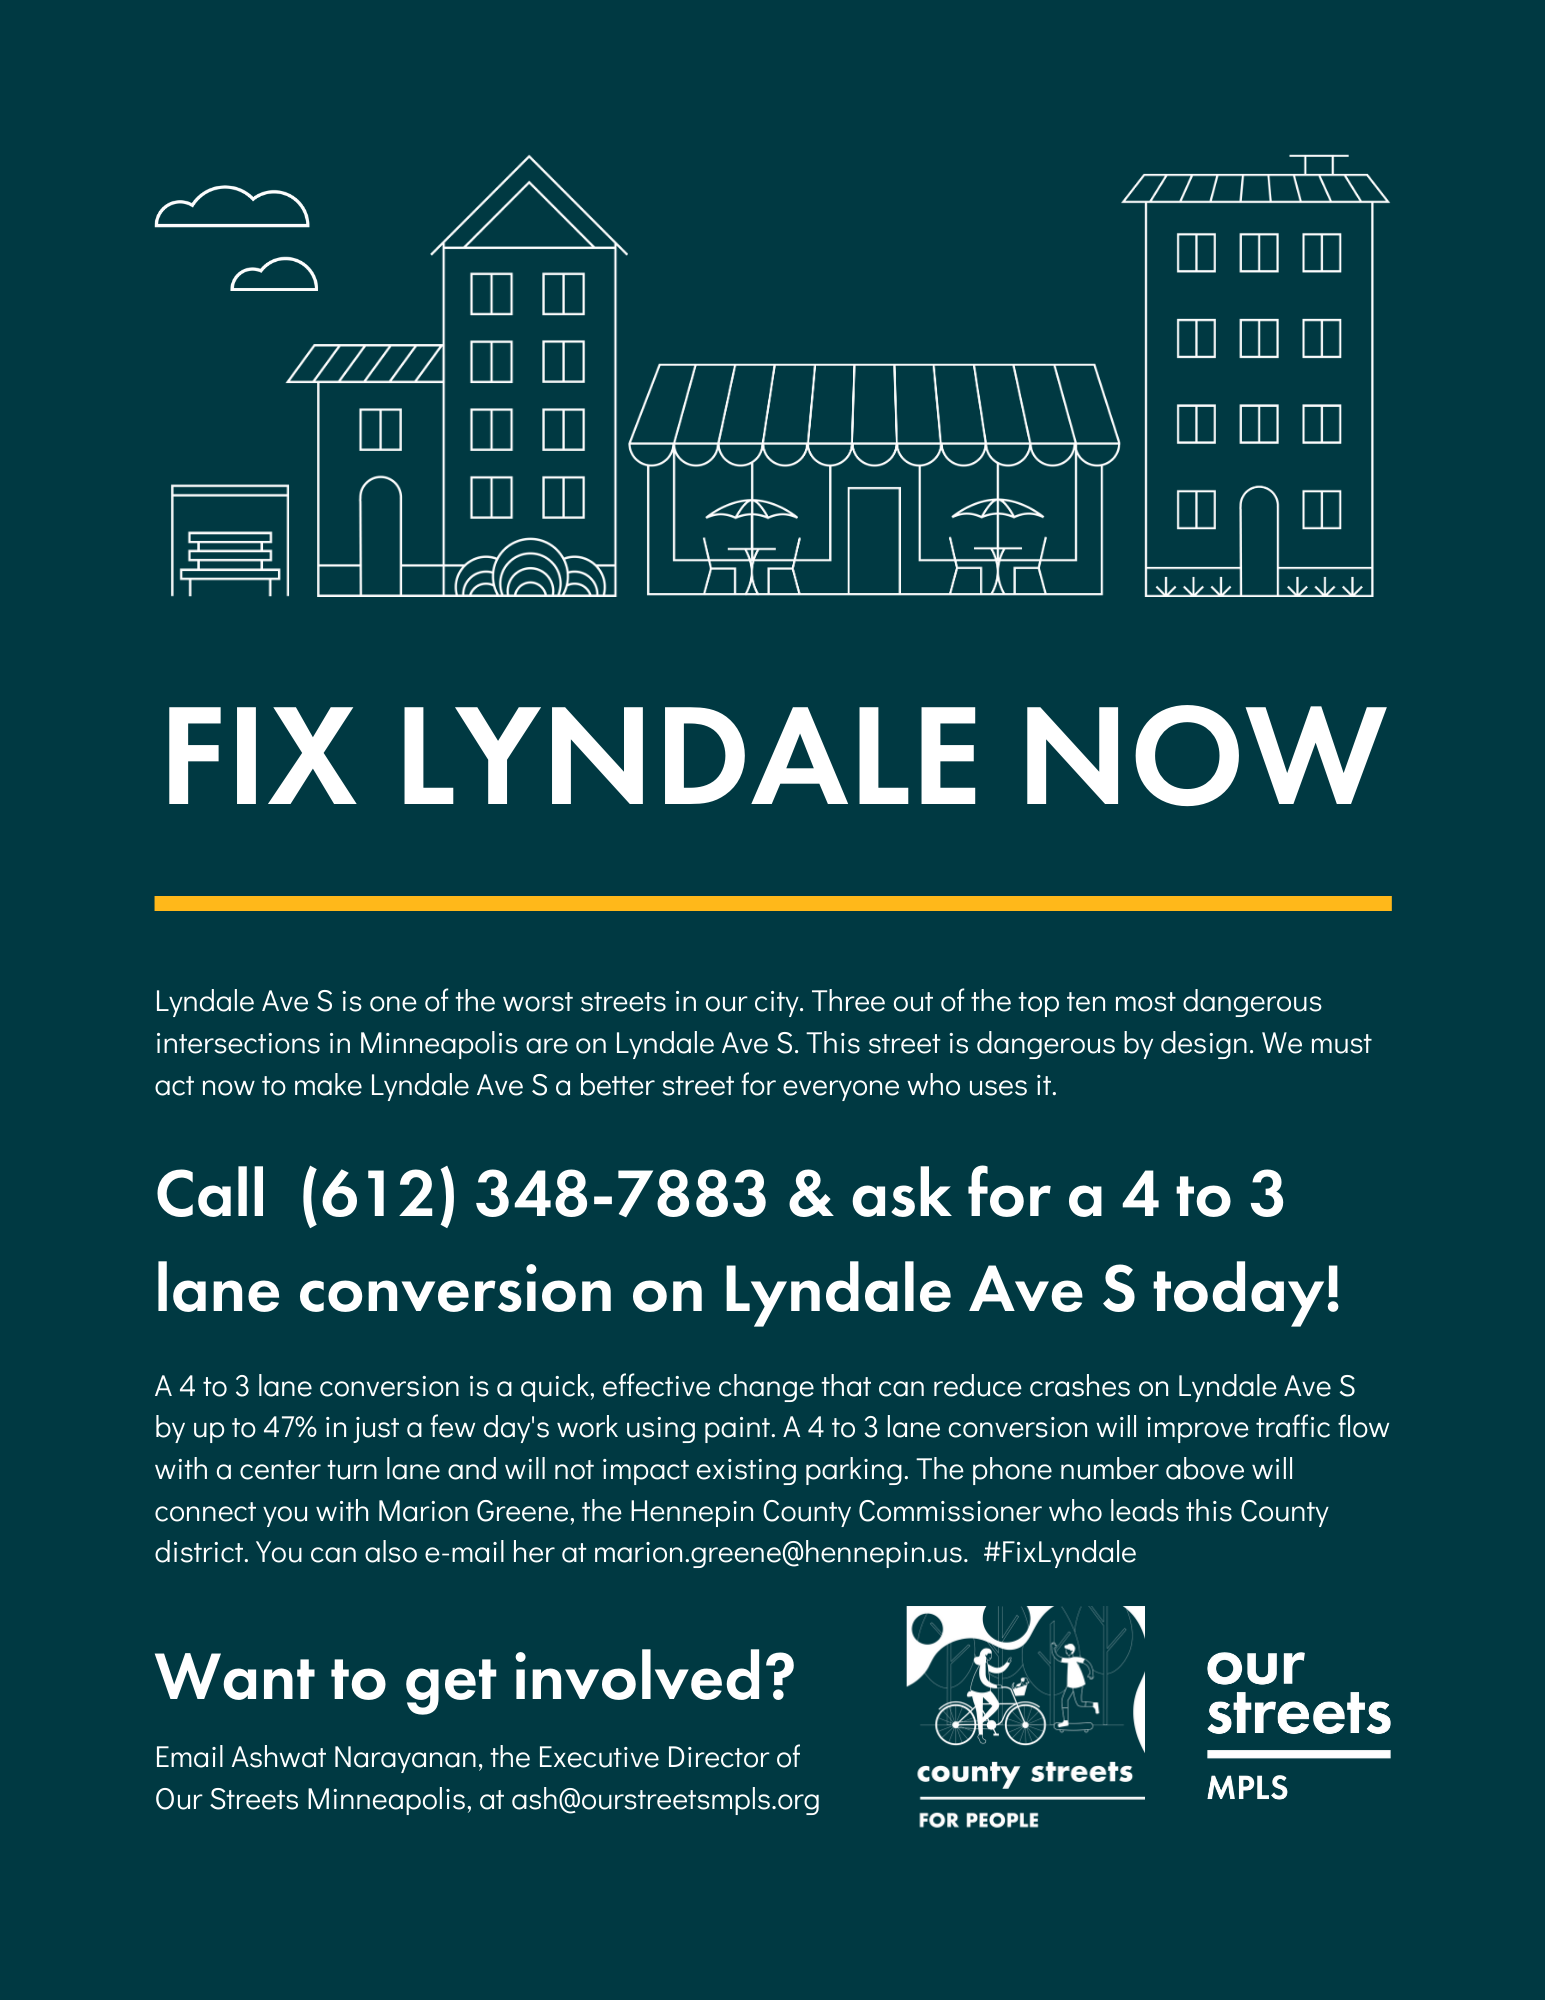 Fix Lyndale flyer encouraging people to call Marion Greene